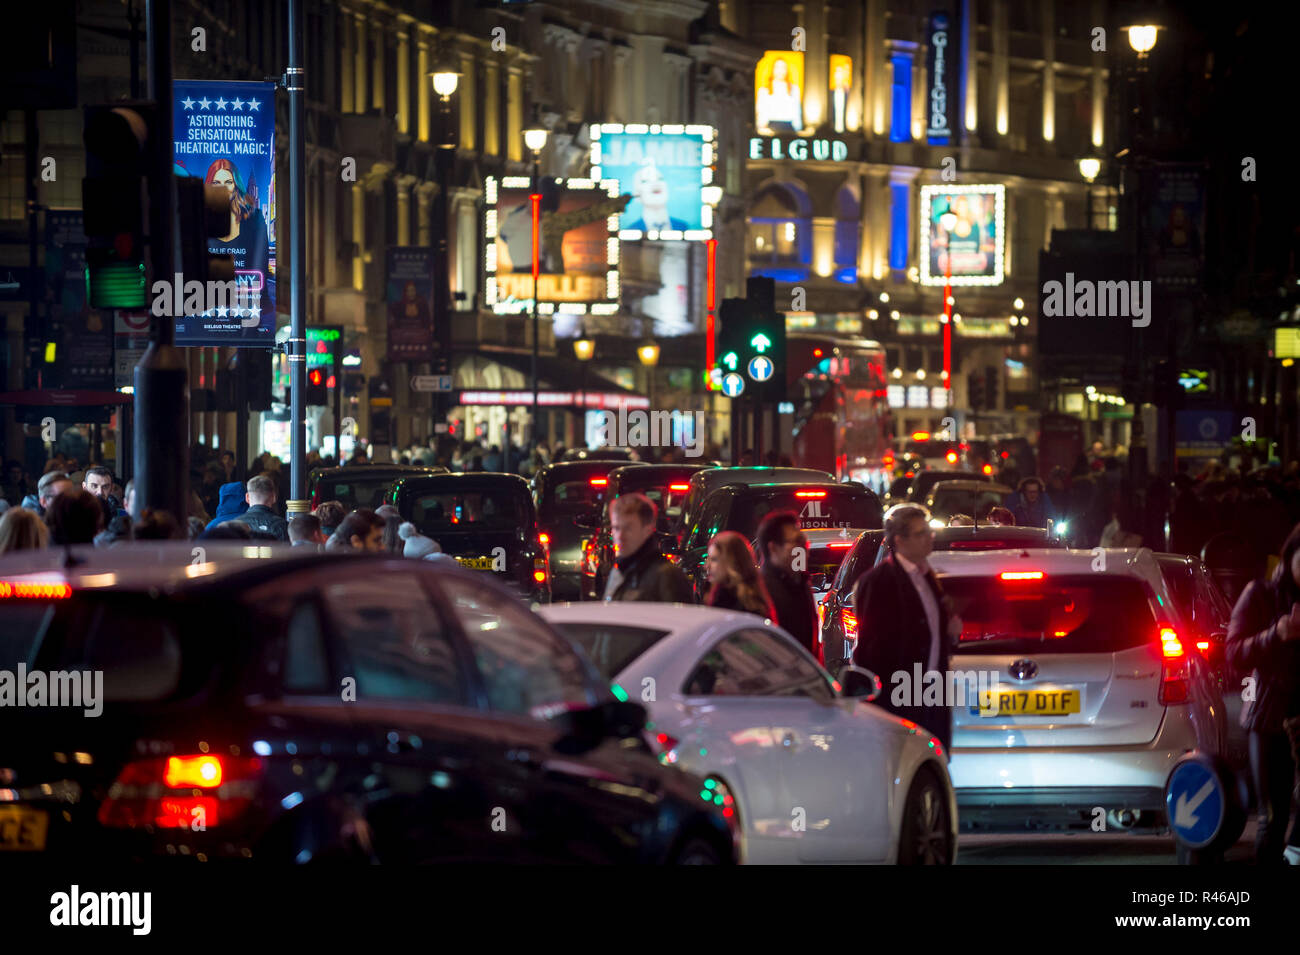 LONDON - DECEMBER 23, 2018: Pedestrians cross a traffic-clogged intersection at Piccadilly Circus in front of the shining lights of West End theatres. - Stock Image